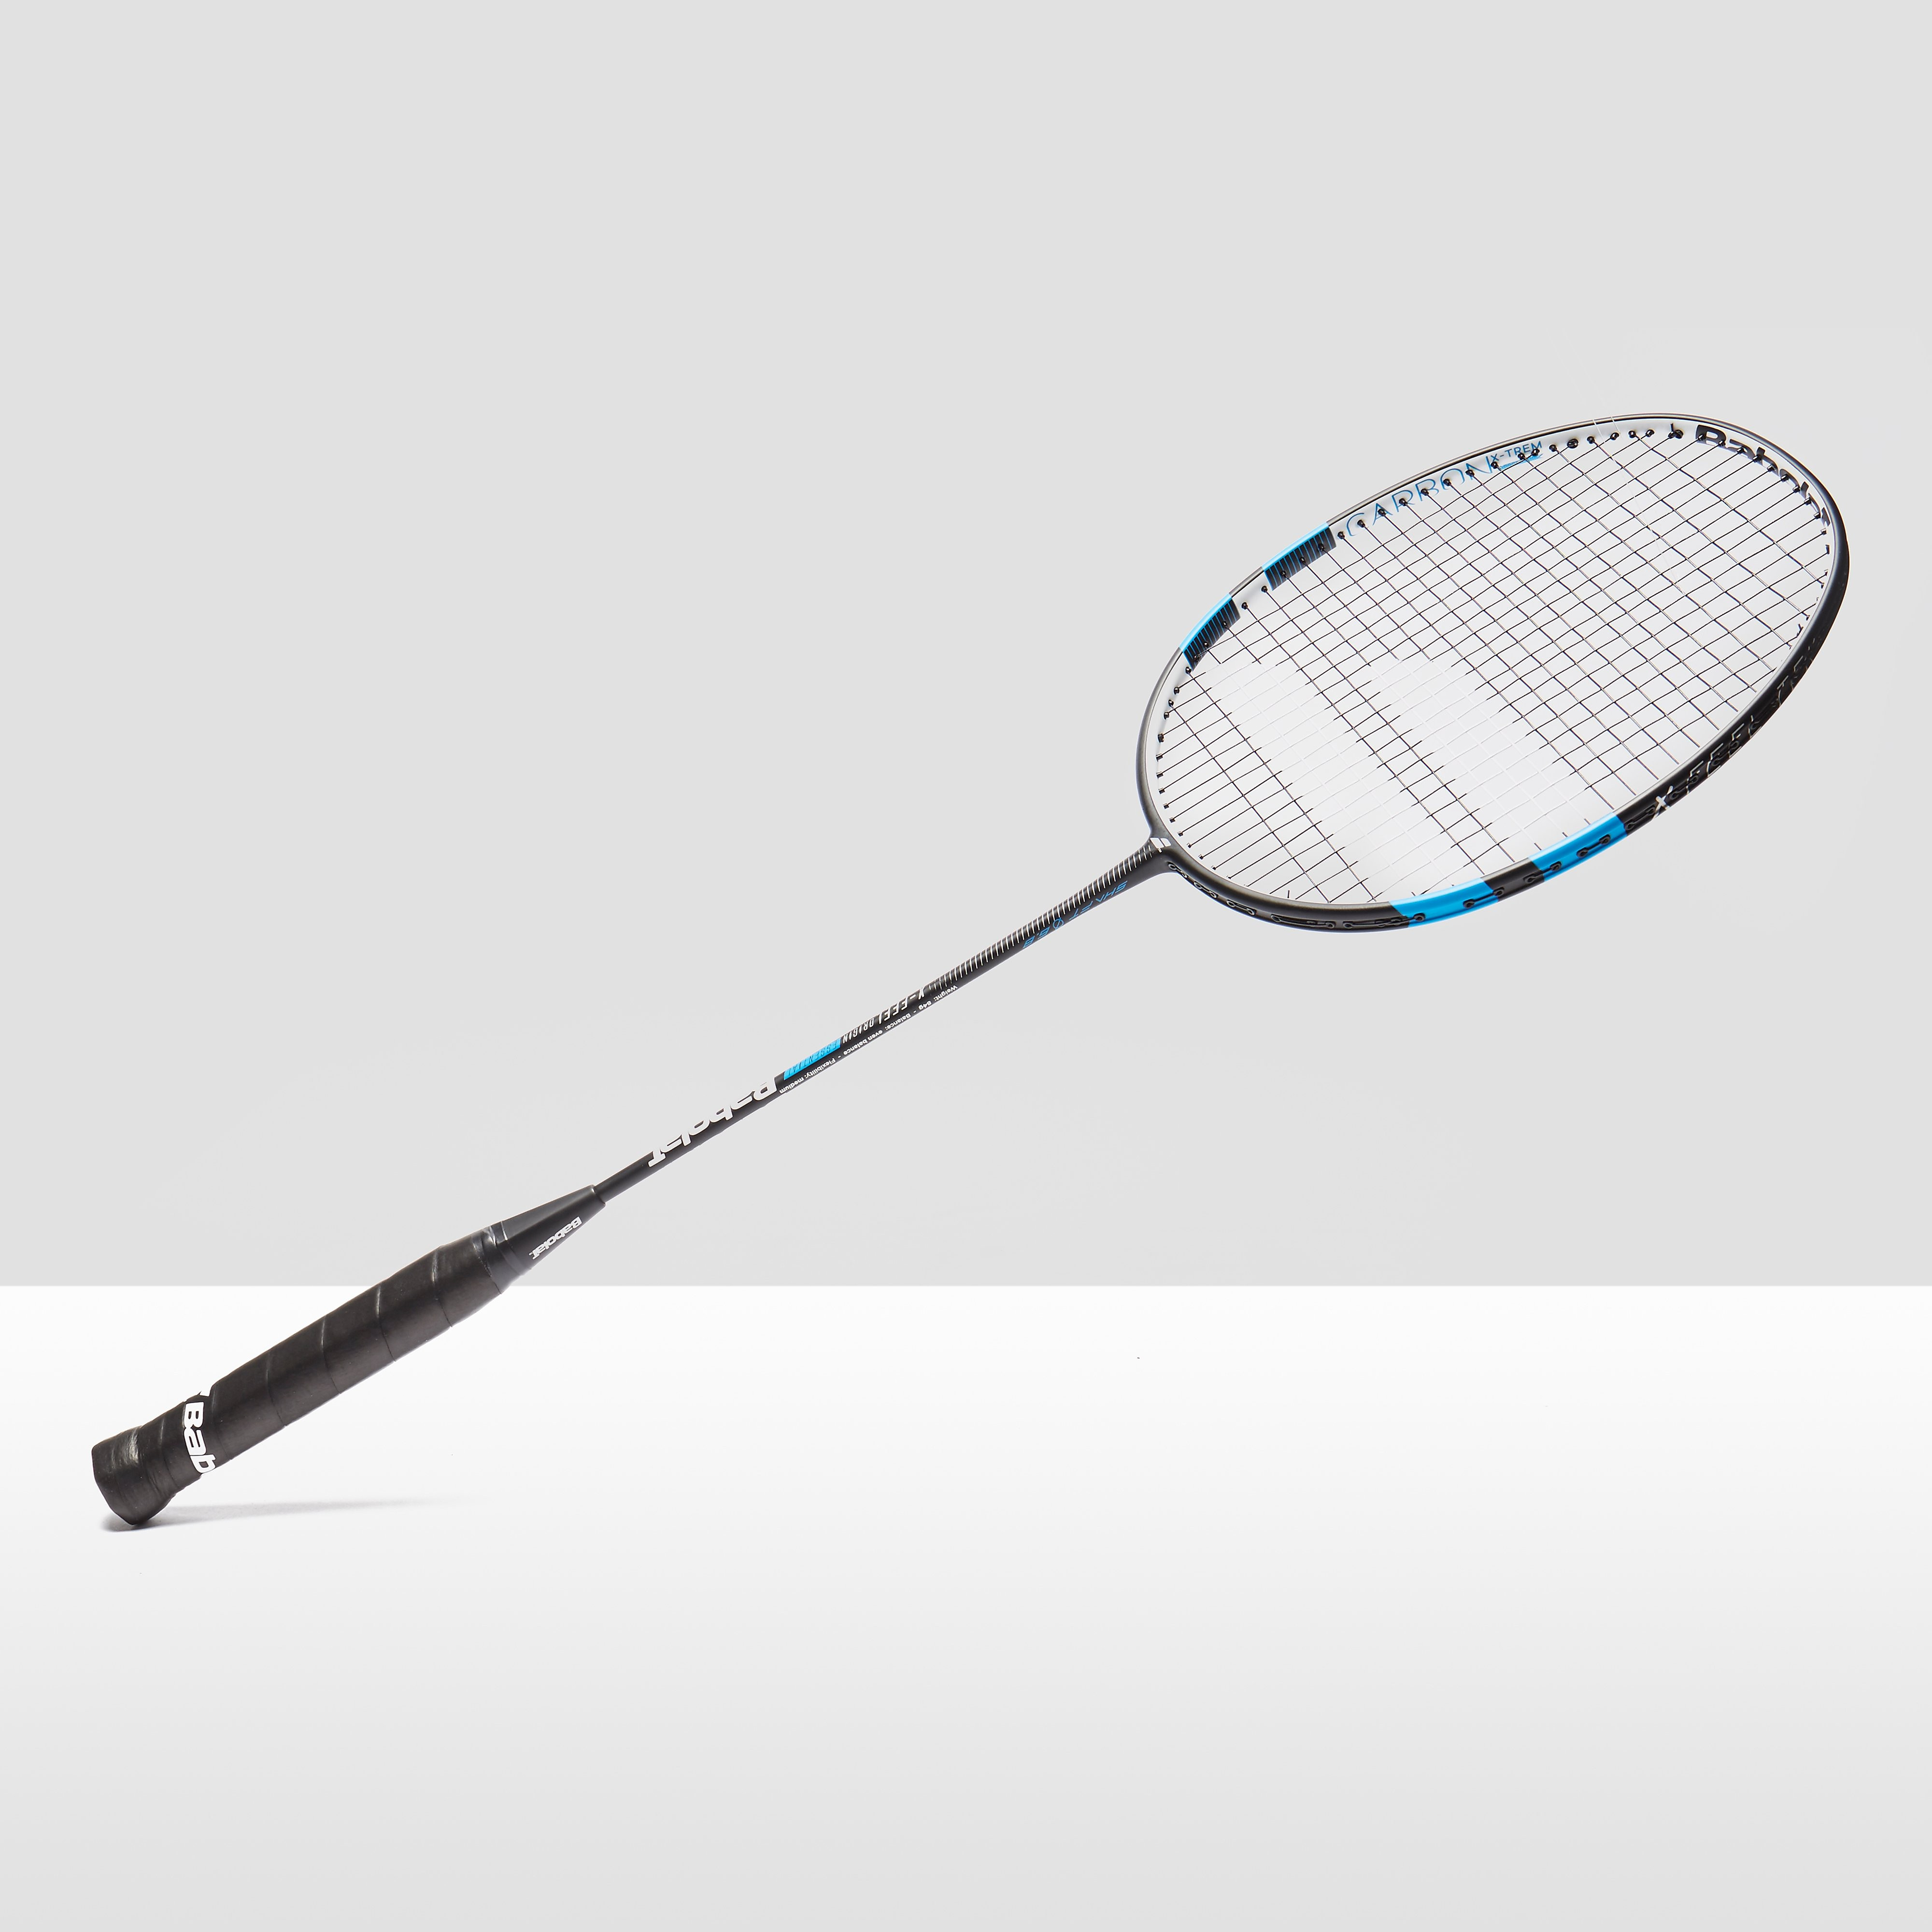 Babolat X-feel Origin Essential Badminton Racket